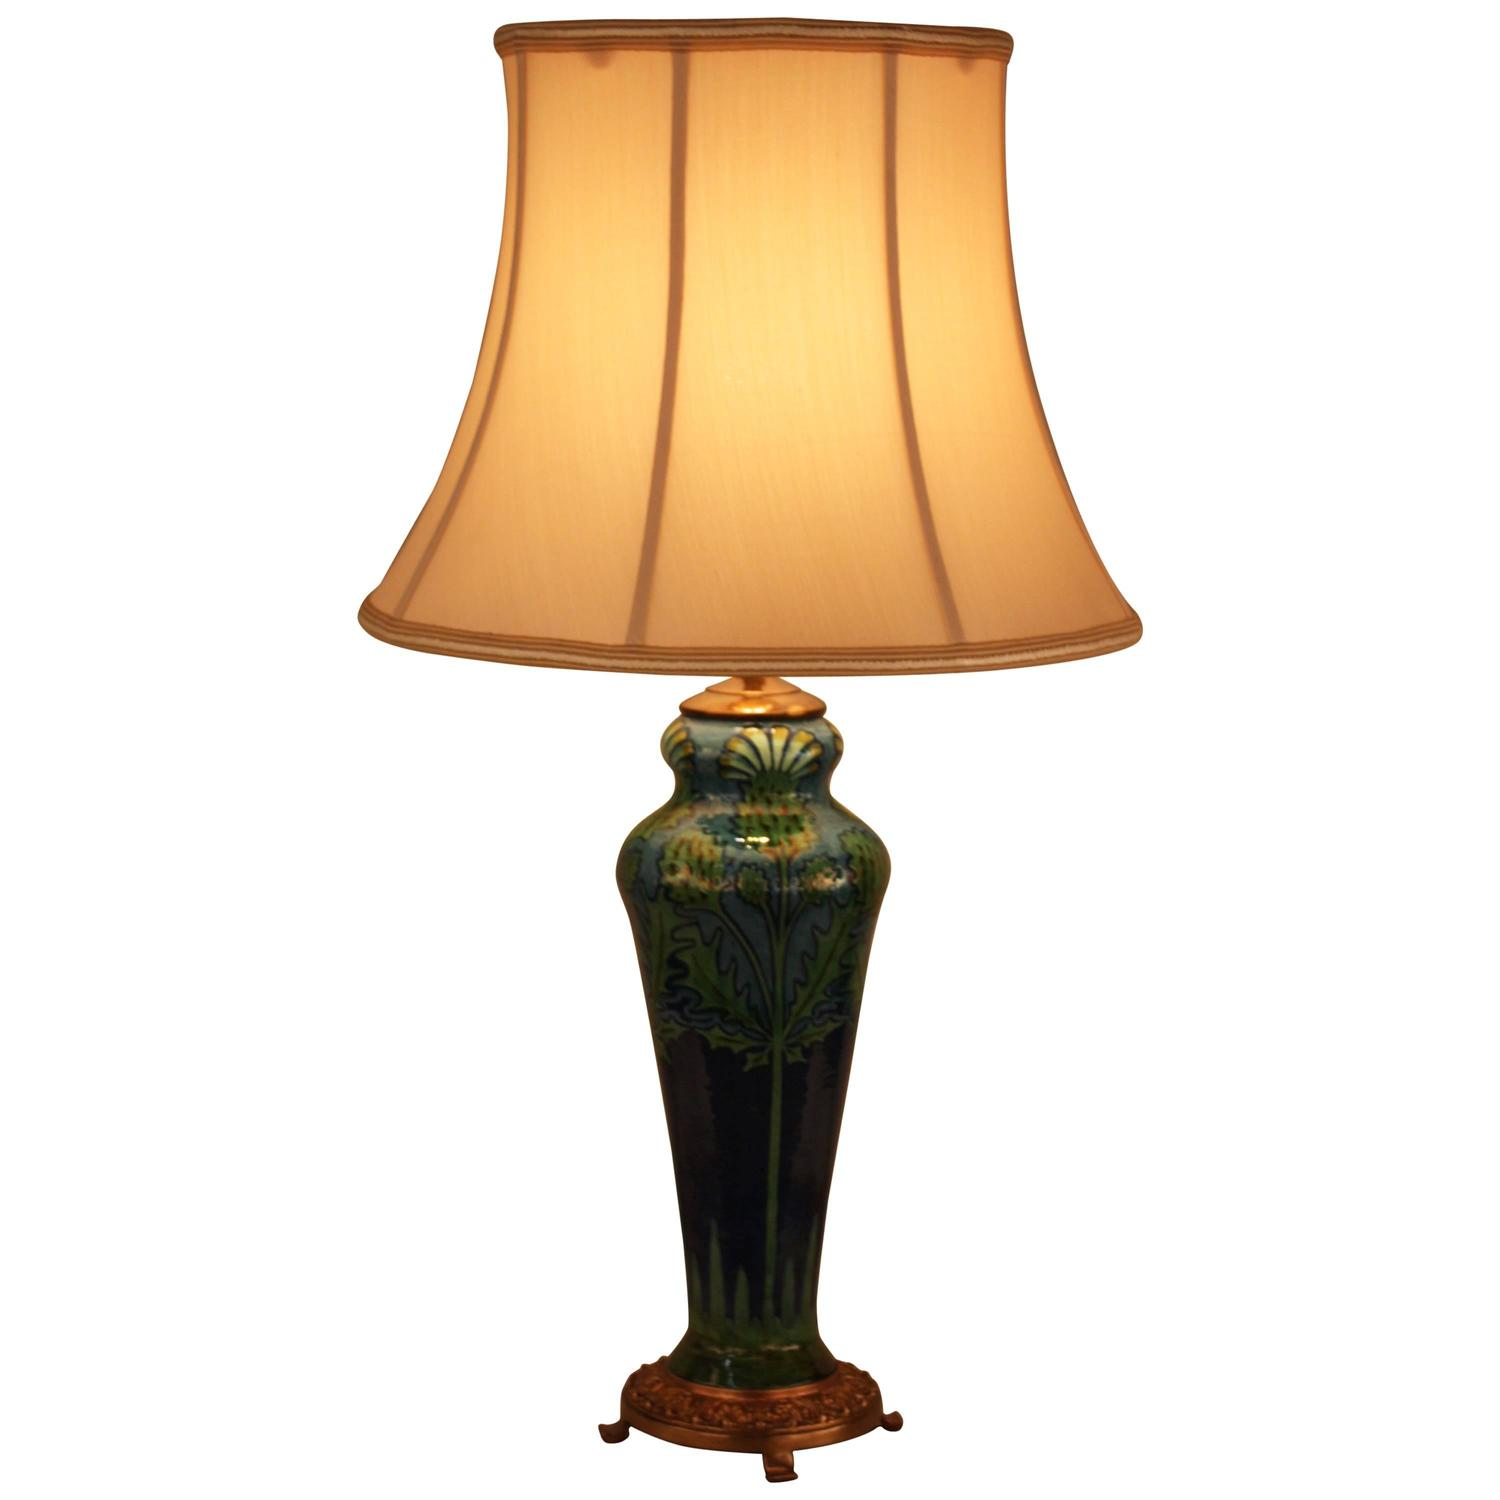 french art deco pottery table lamp at 1stdibs. Black Bedroom Furniture Sets. Home Design Ideas